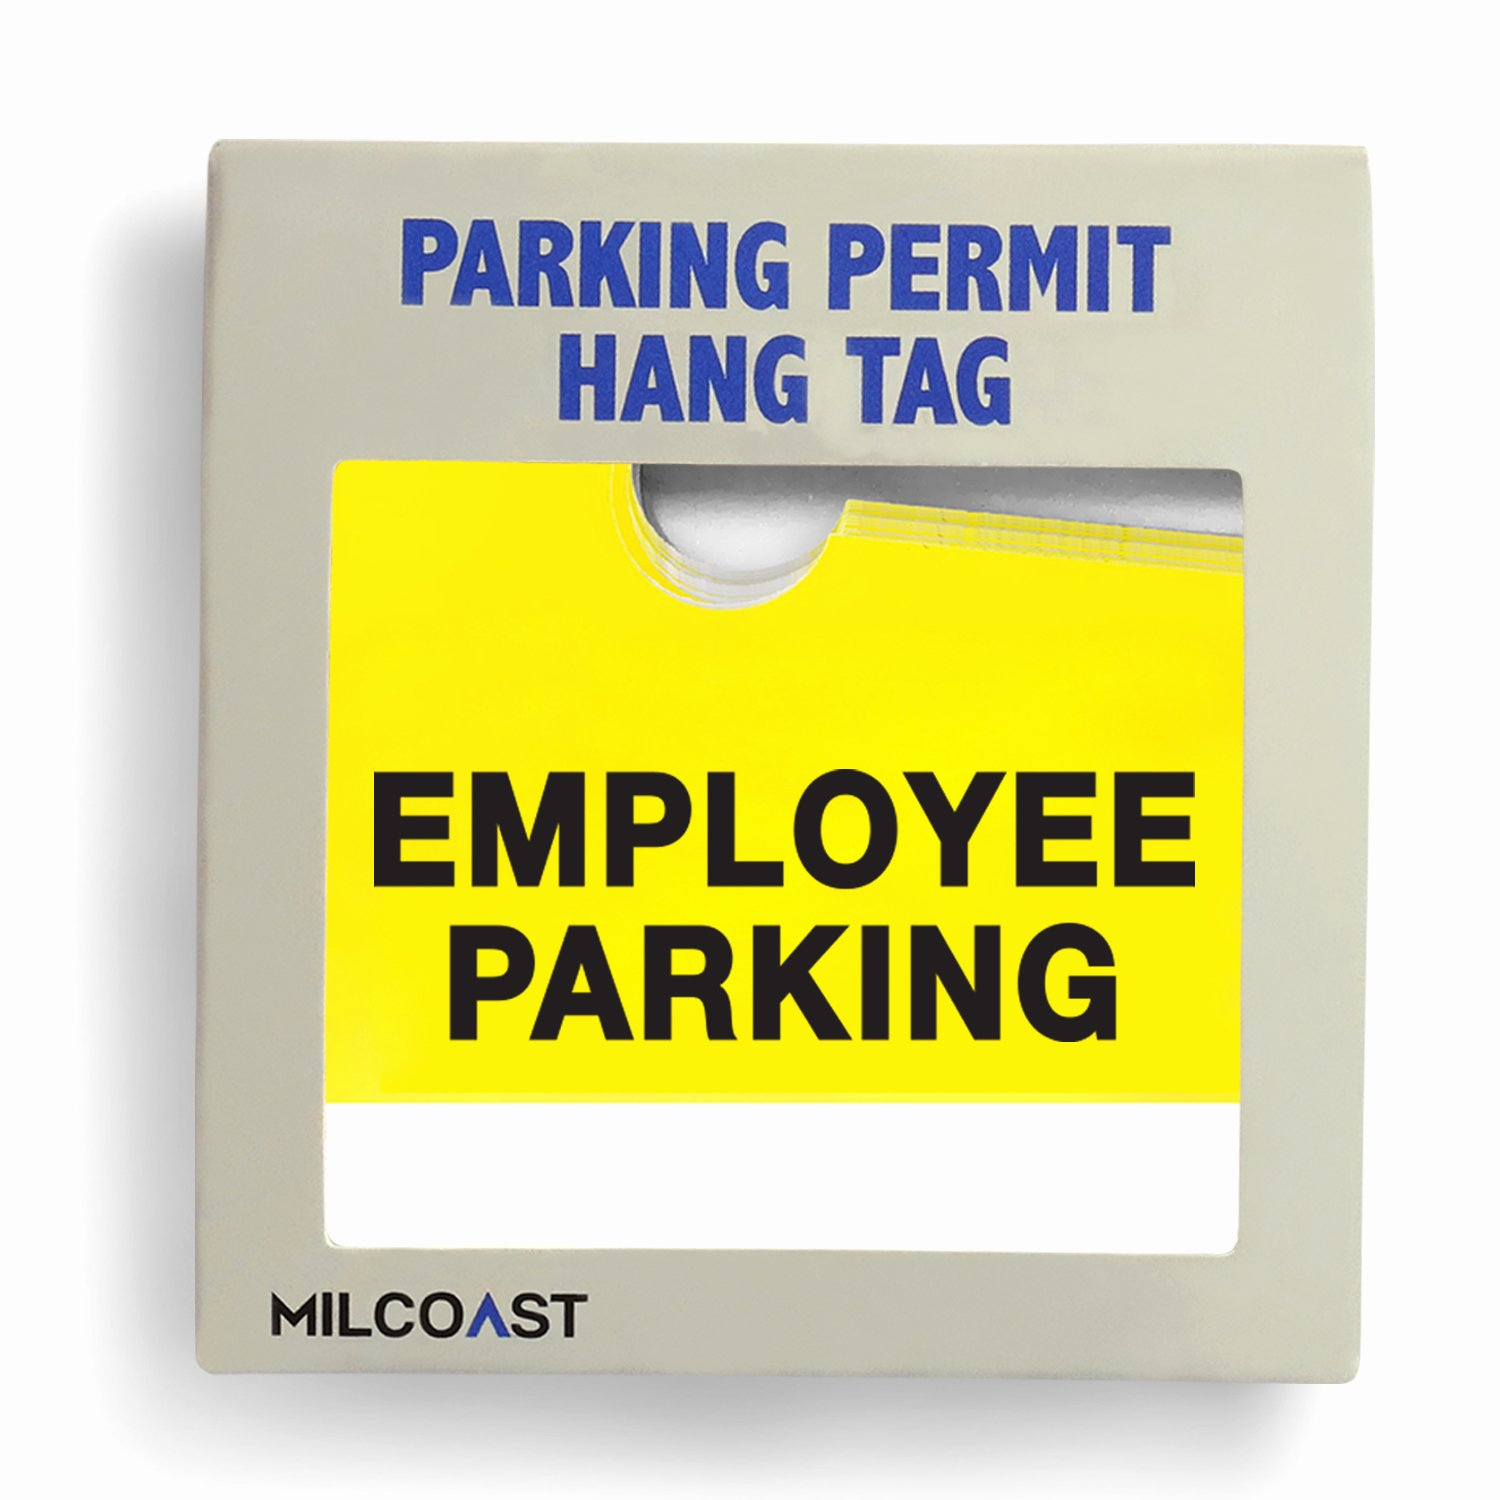 Parking Hang Tags Template Elegant Milcoast Employee Parking Permit Pass Stock Hang Tags – 10